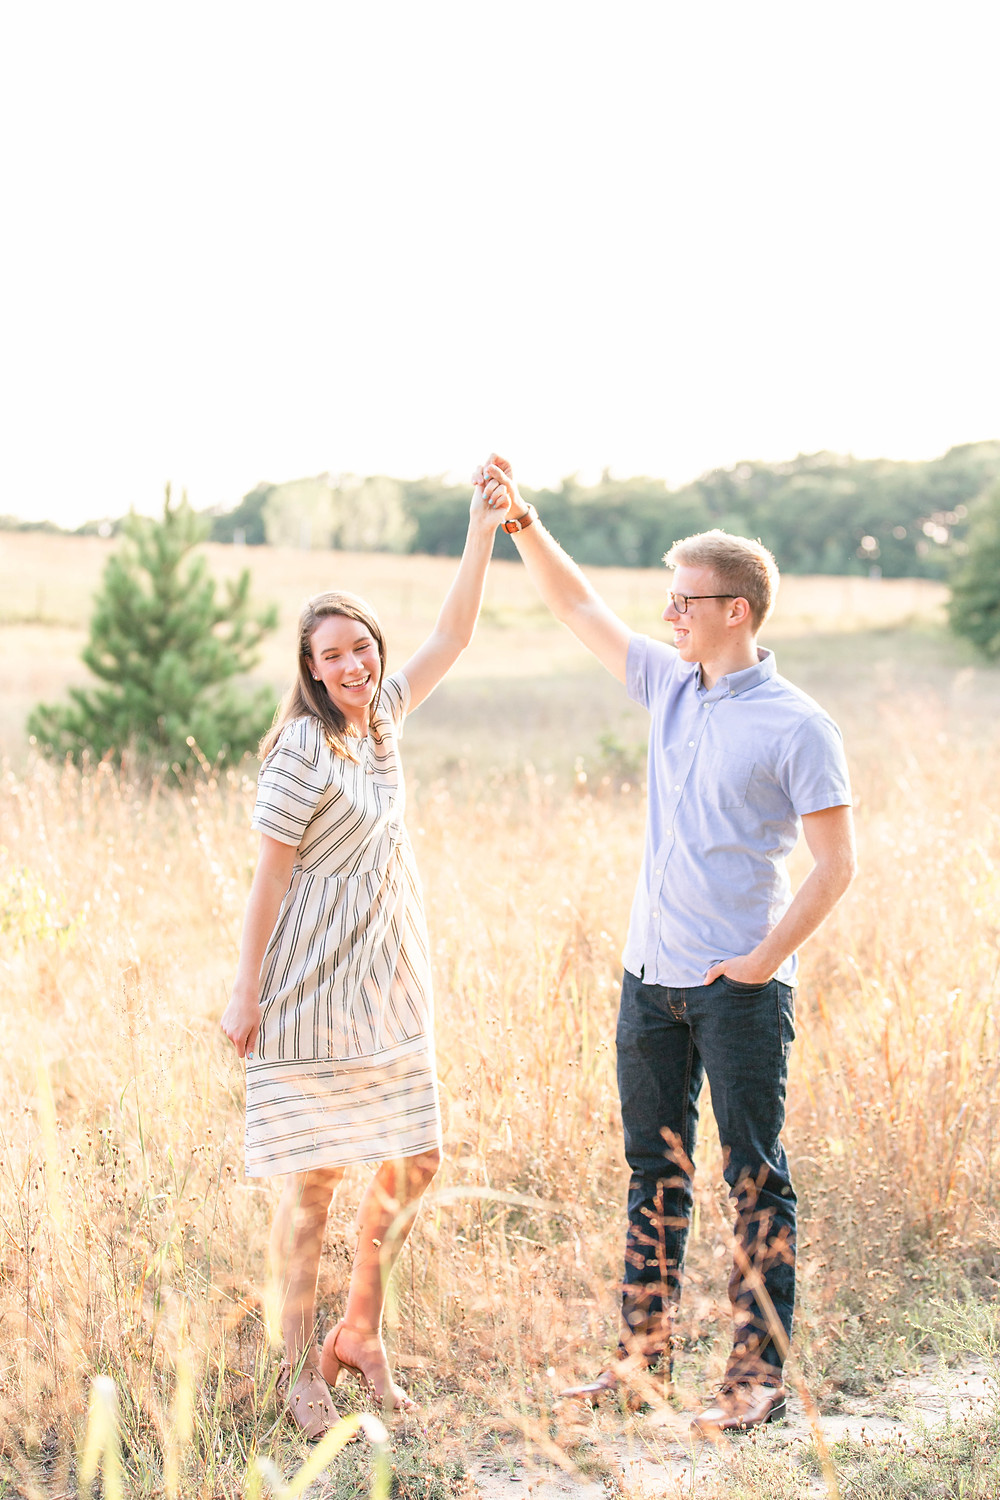 Engagement Photos Riley Trails Holland Michigan Engaged Couple twirling in open field smiling